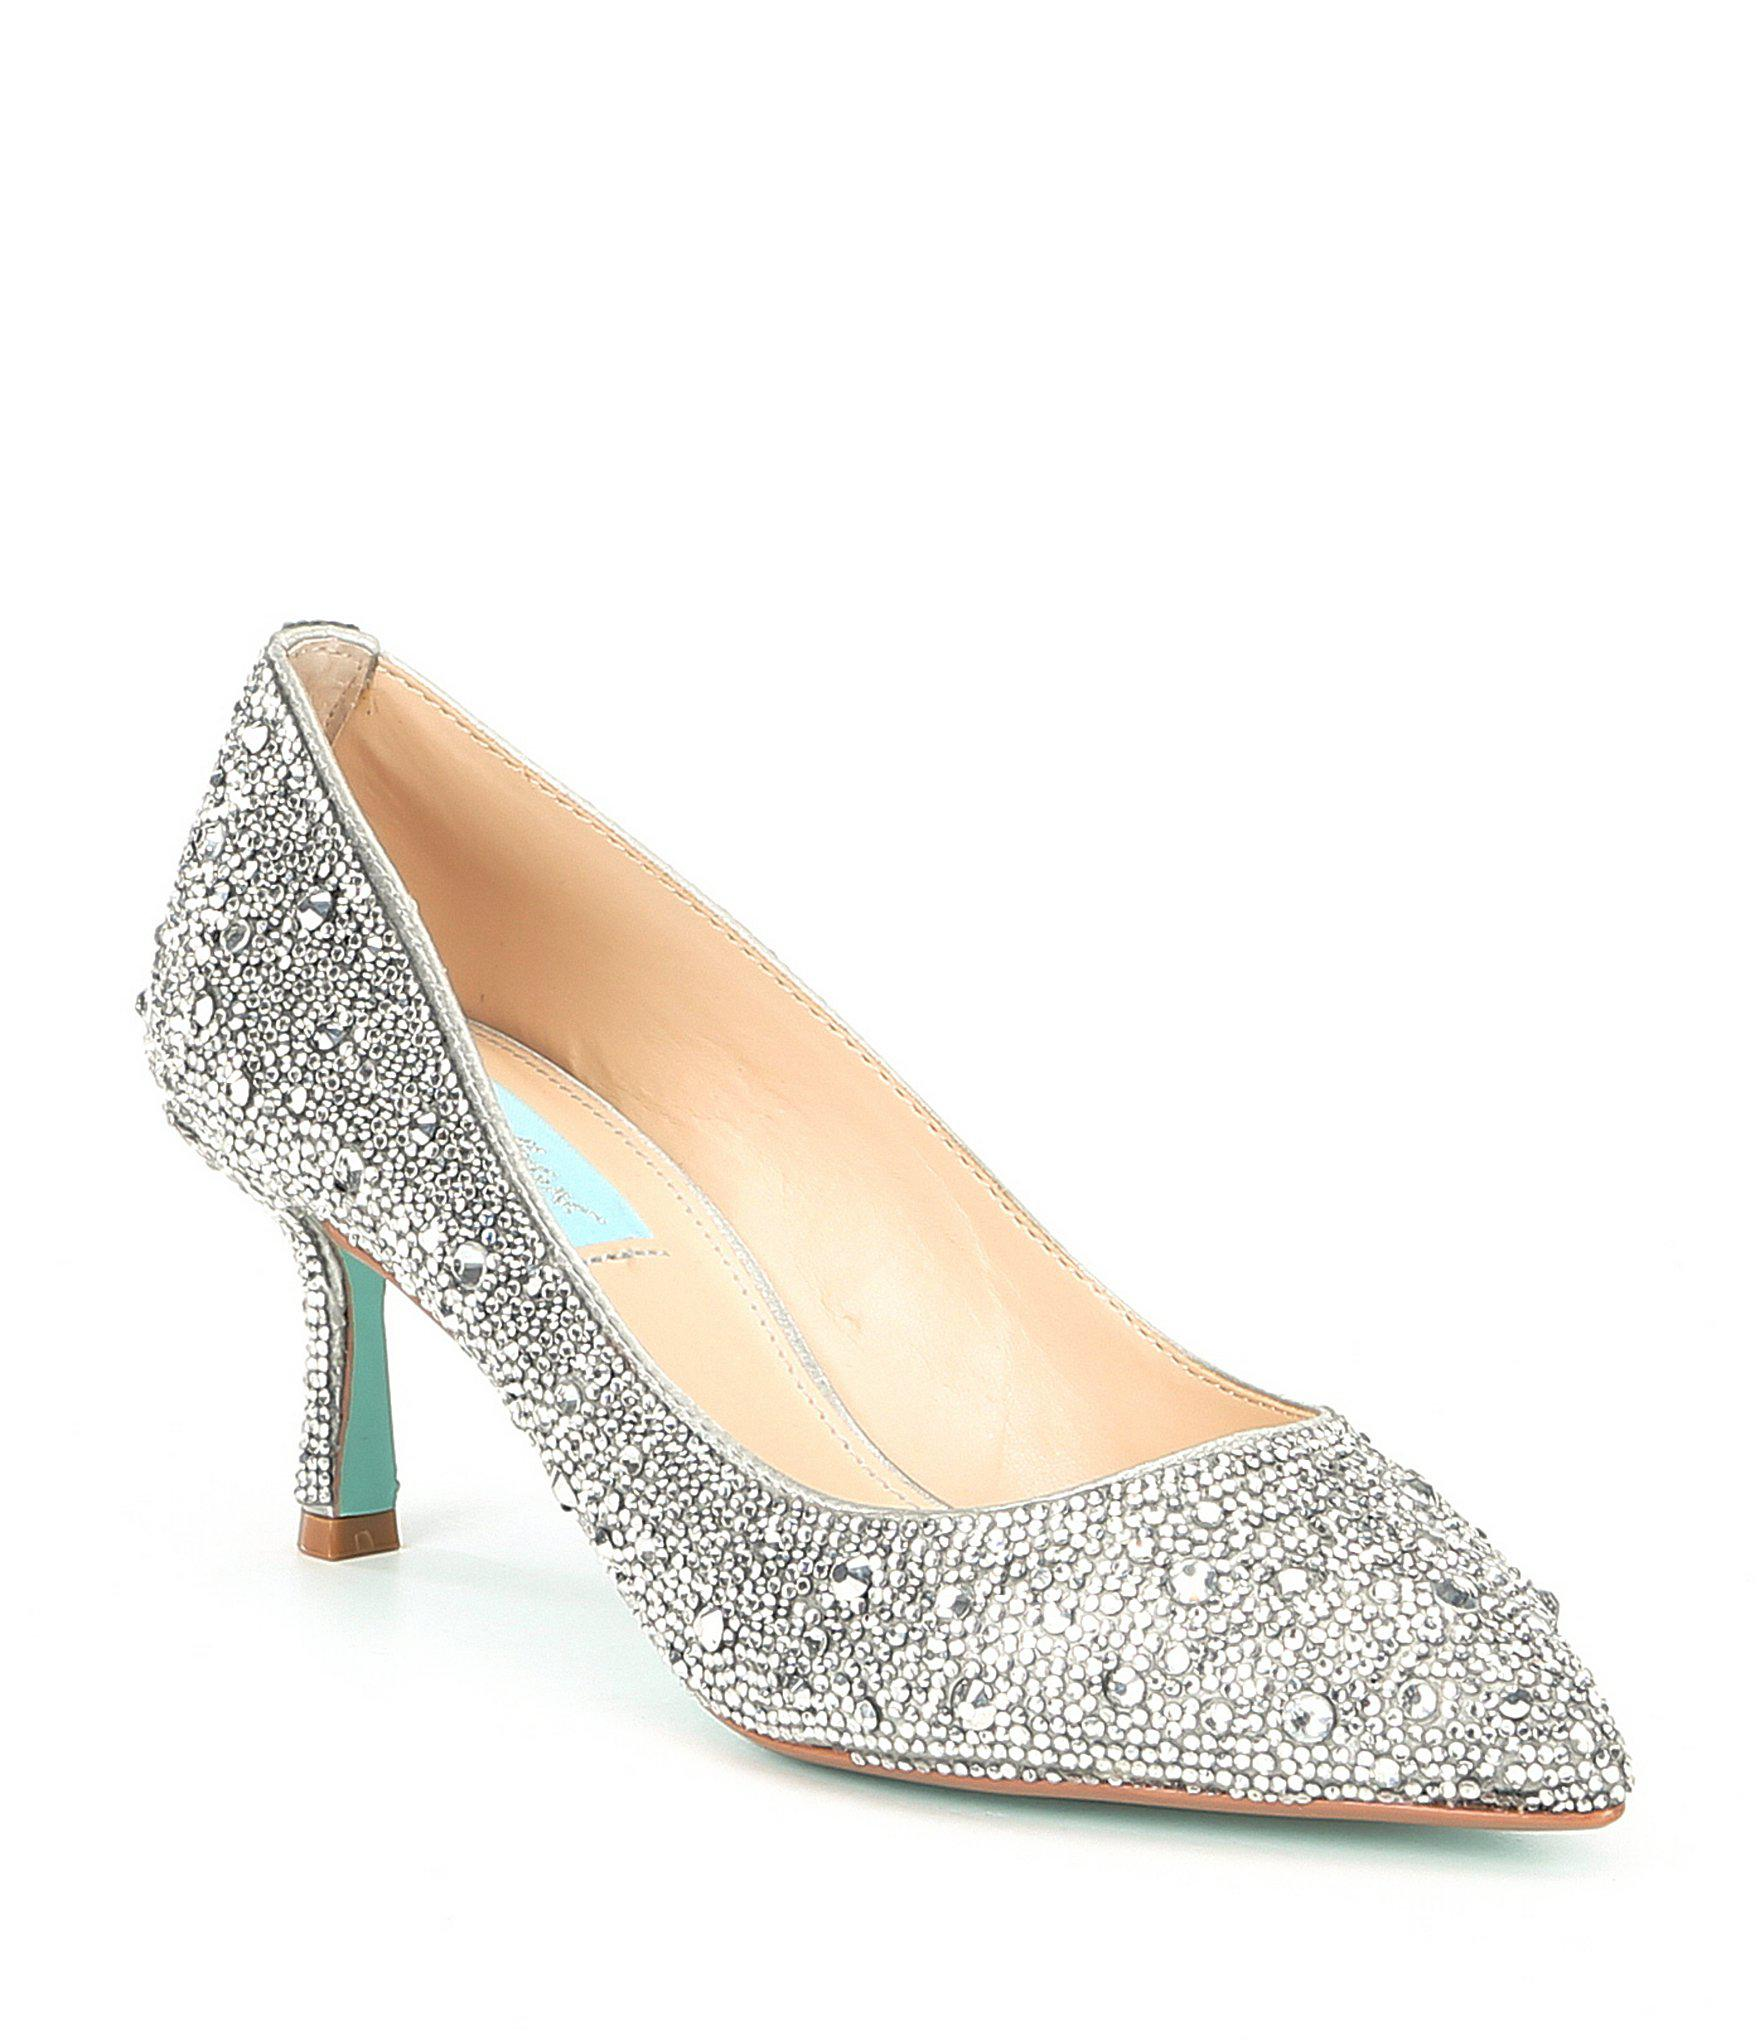 31fb550eaef Betsey Johnson Blue By Jora Glitter Jeweled Kitten Heel Pumps in ...